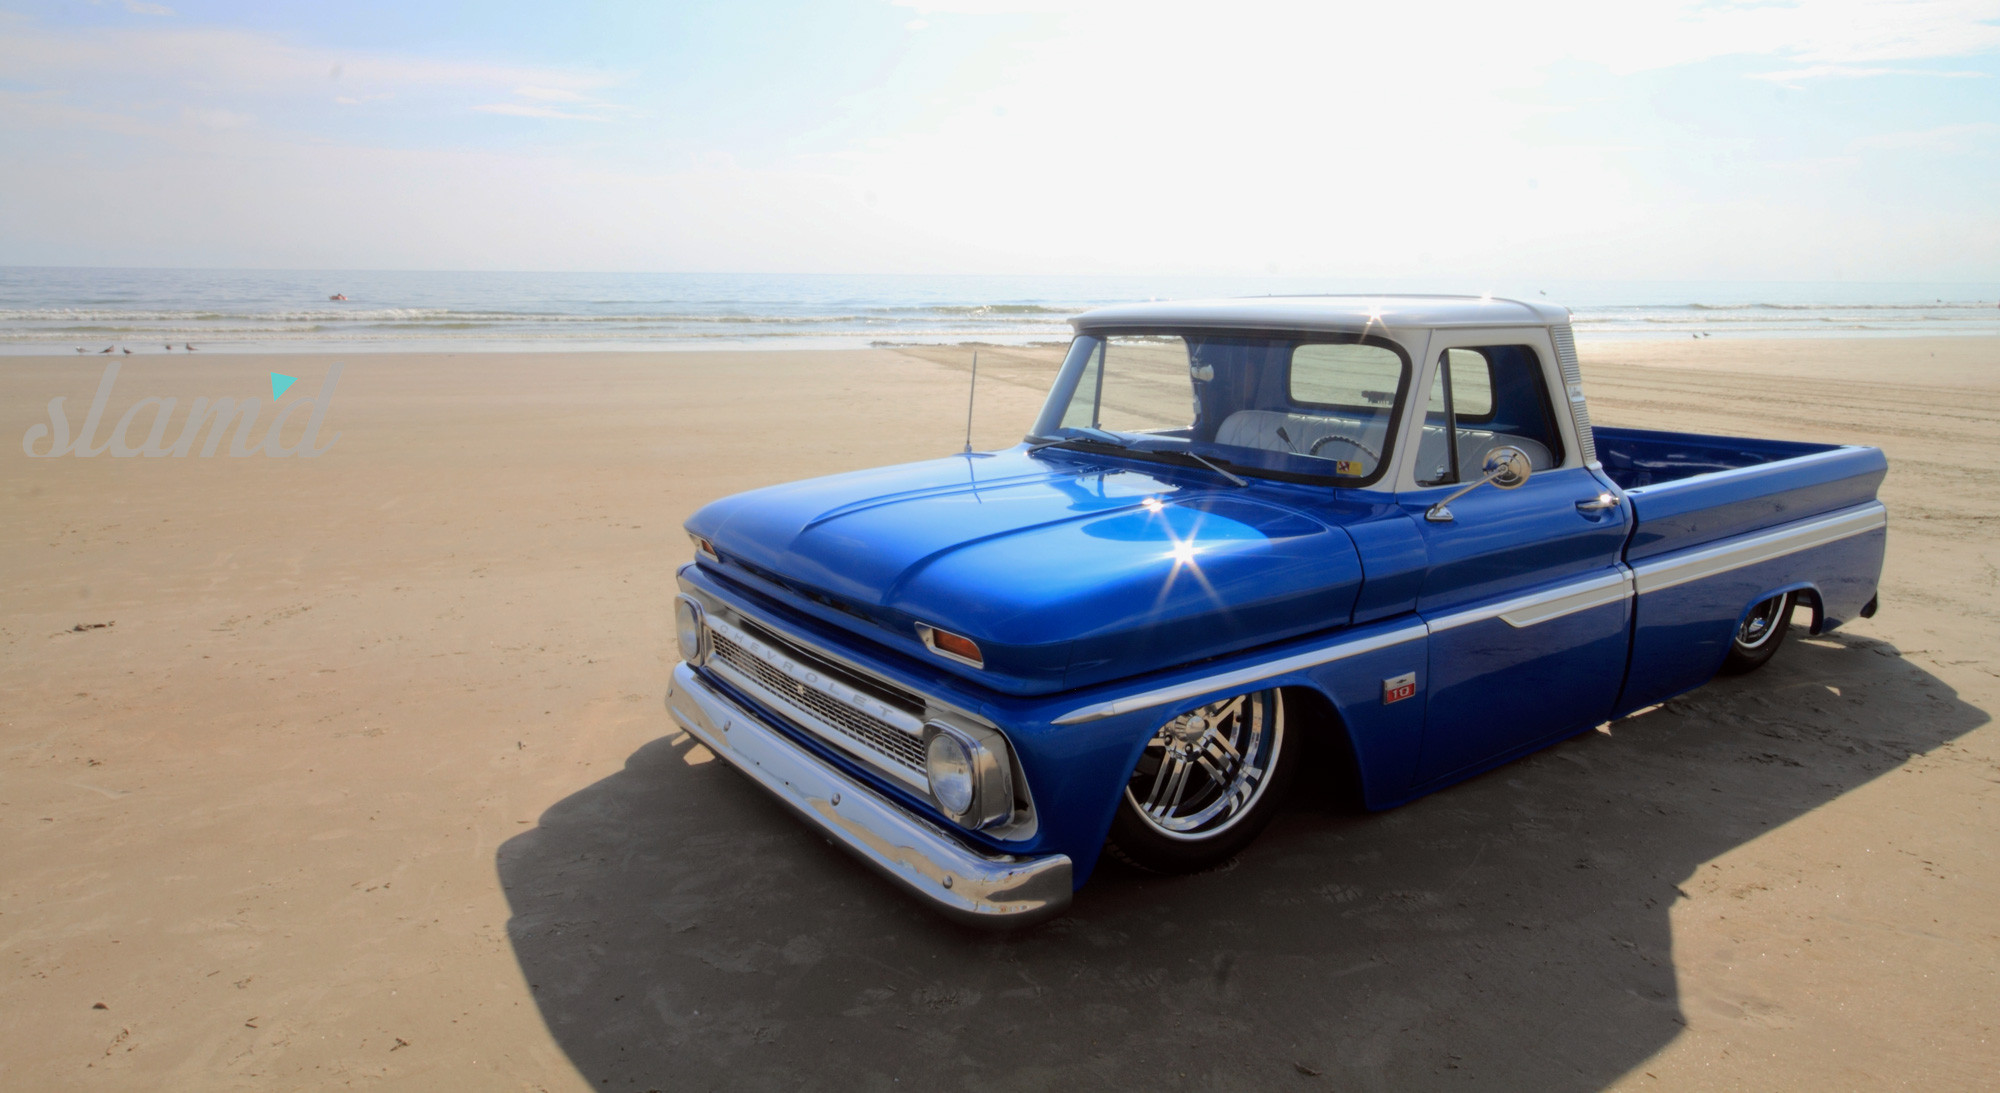 Oceans Blue Steven Bogues Gorgeous 1966 C 10 Build Slamd Mag Chevy C10 Truck Slammed Bogue01